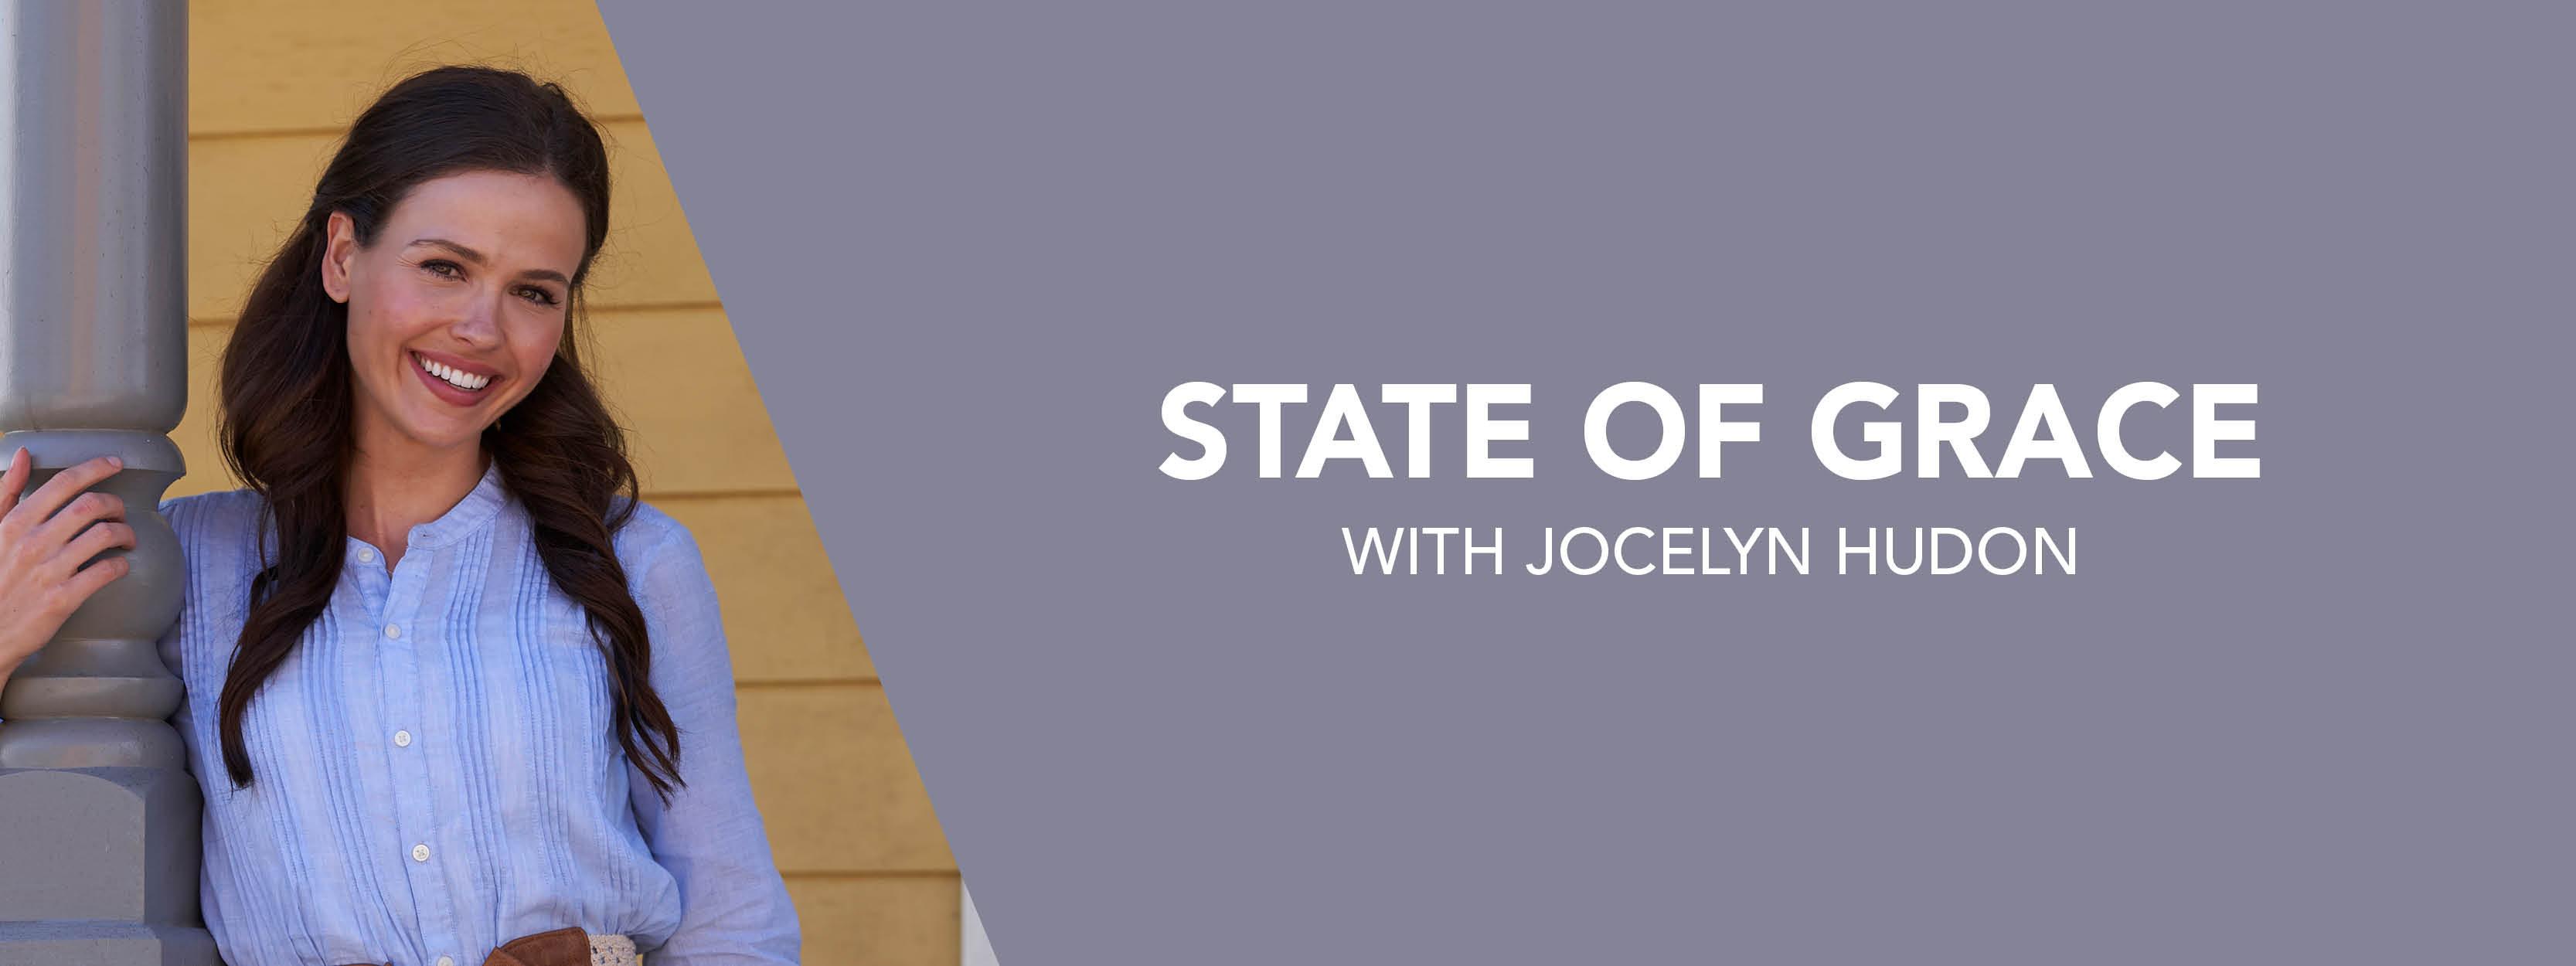 State of Grace with Jocelyn Hudon